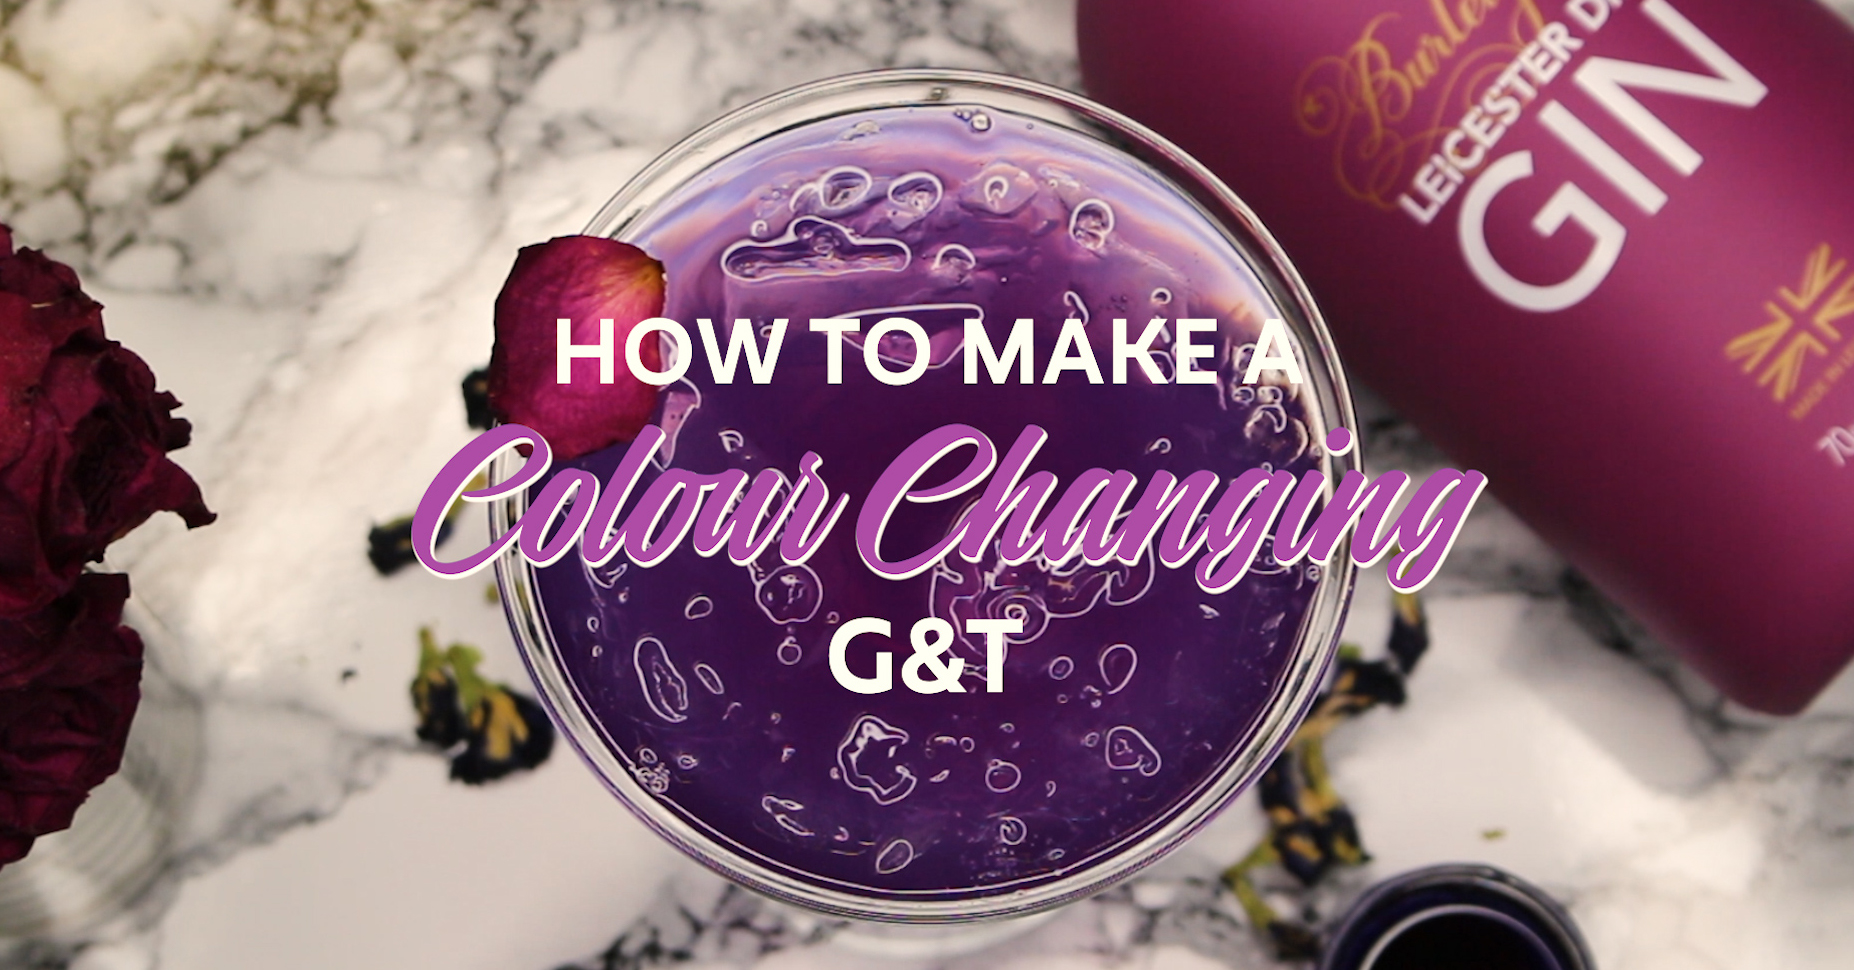 colour changing gin.jpg